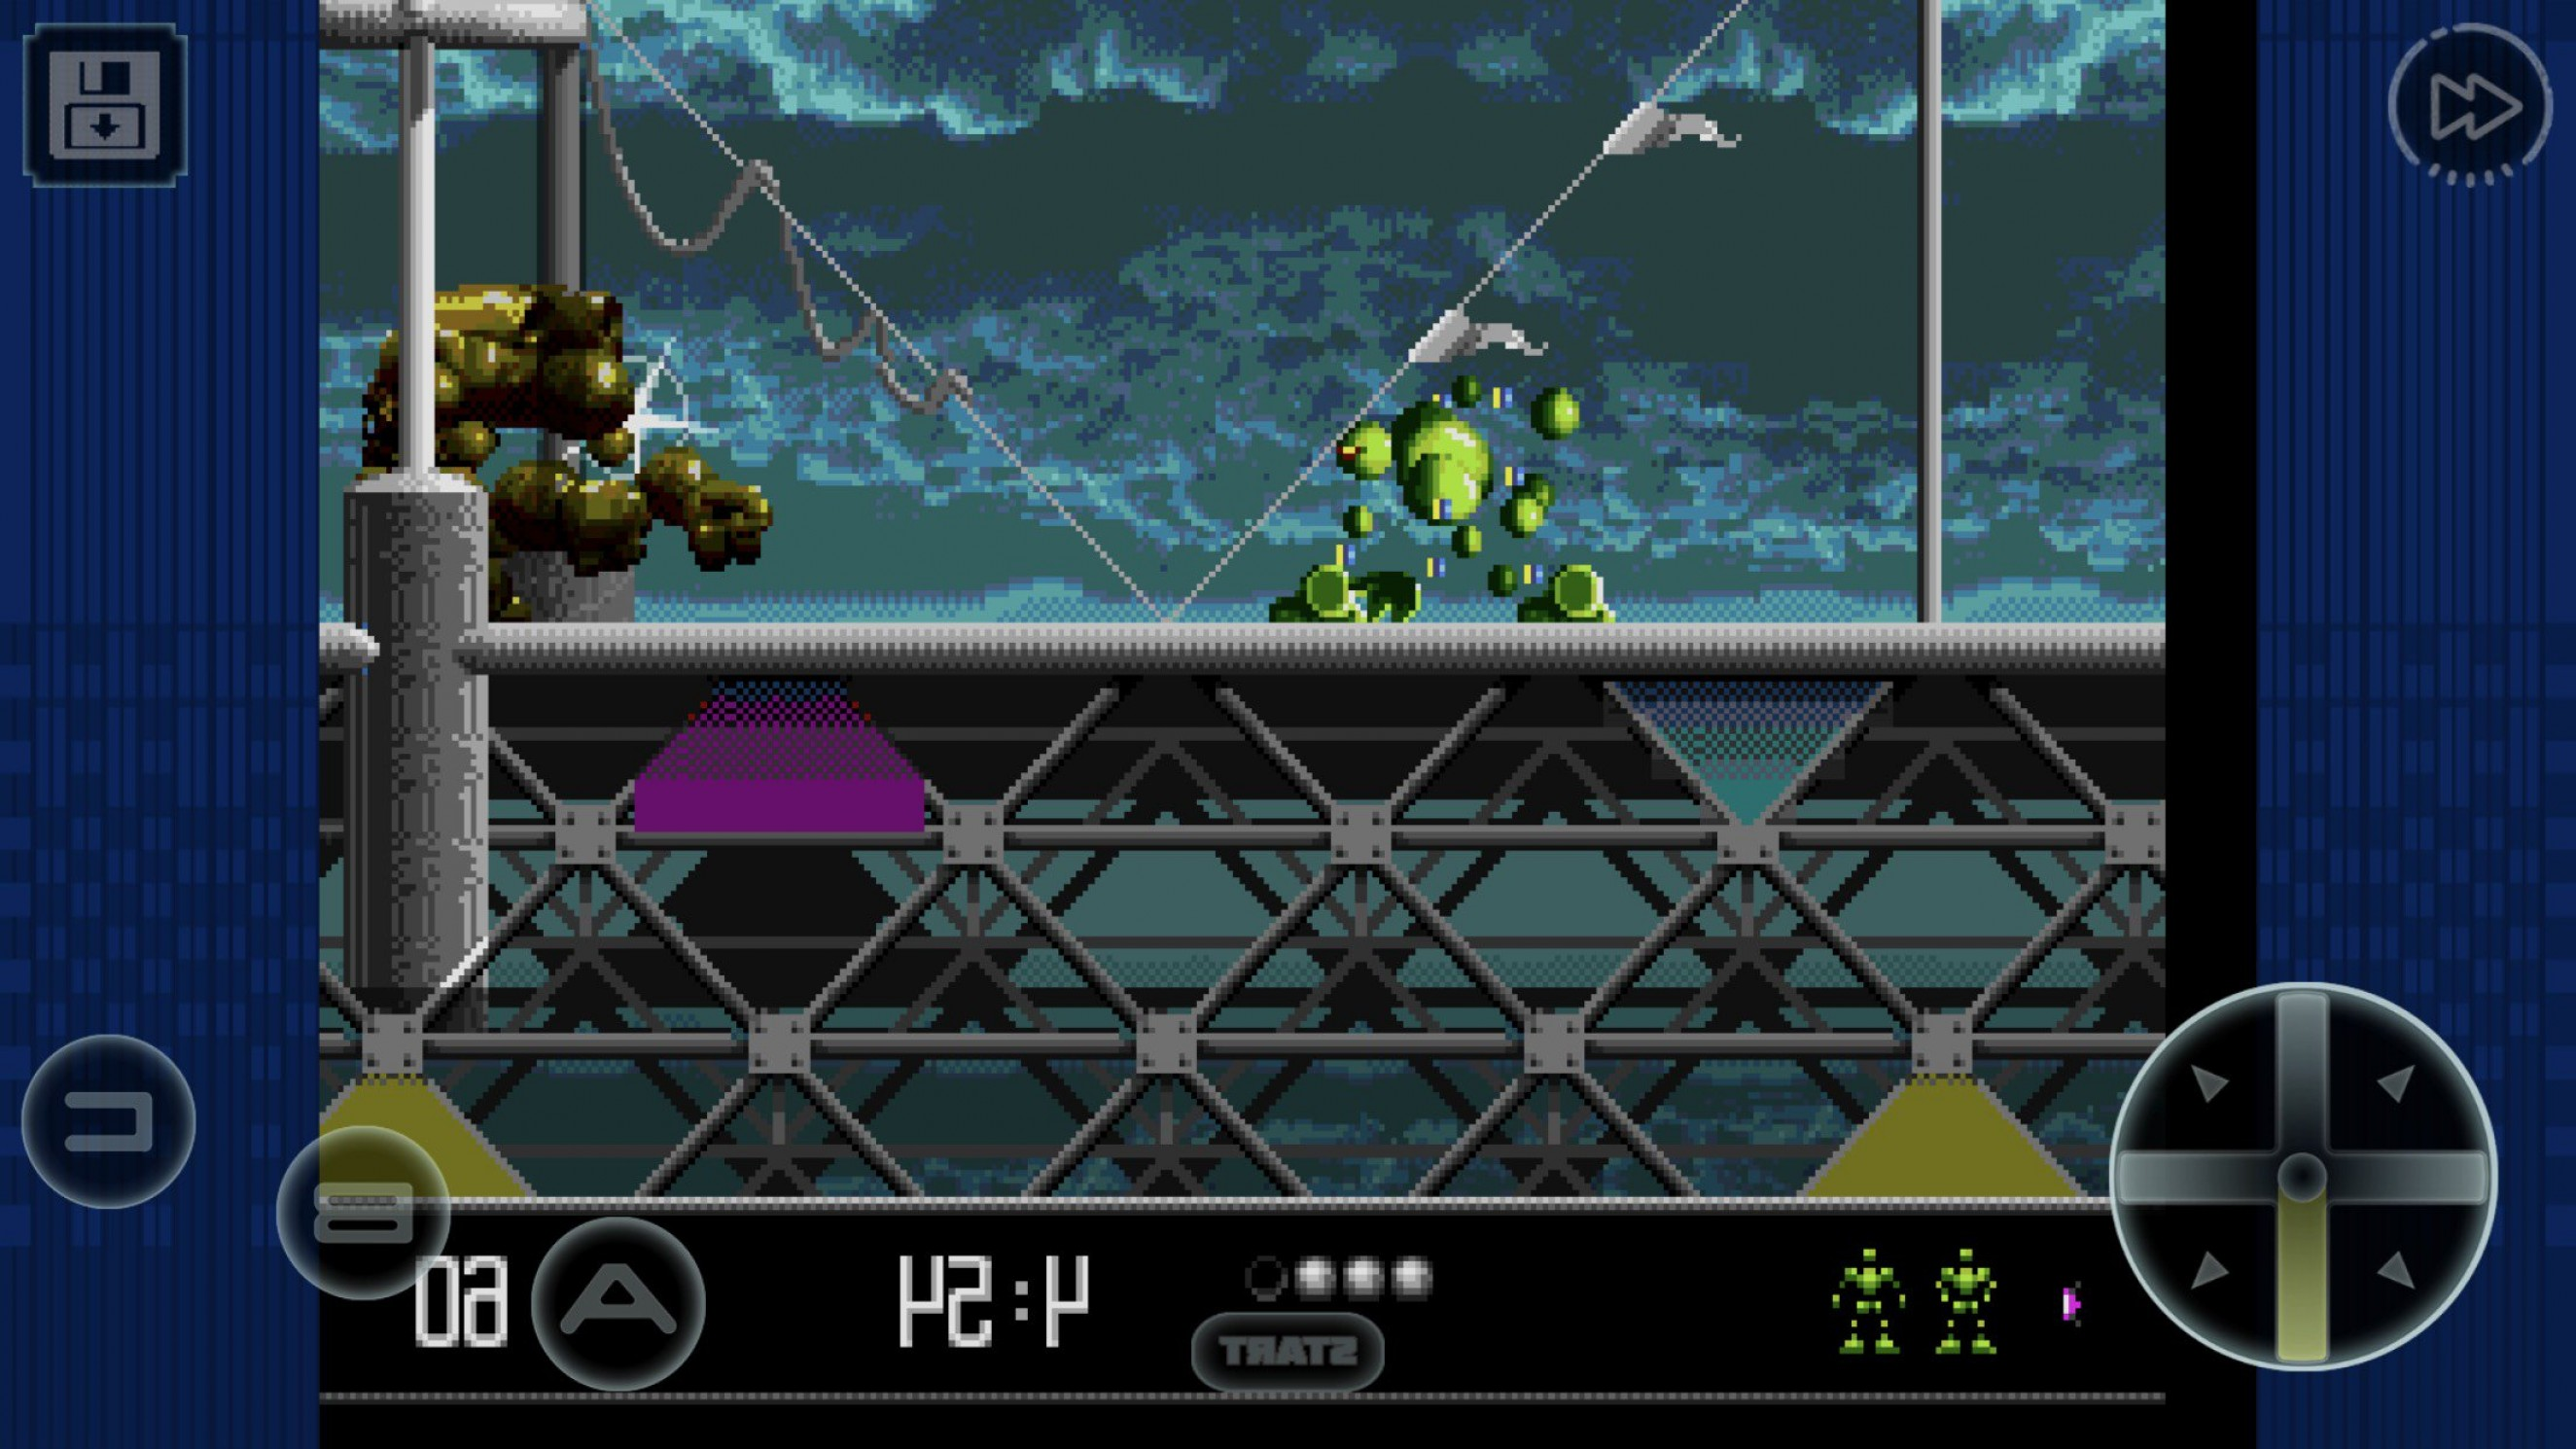 Vectorman Darkness: Vectorman Possibly The Best Genesis Game Is Now Available On Sega Forever